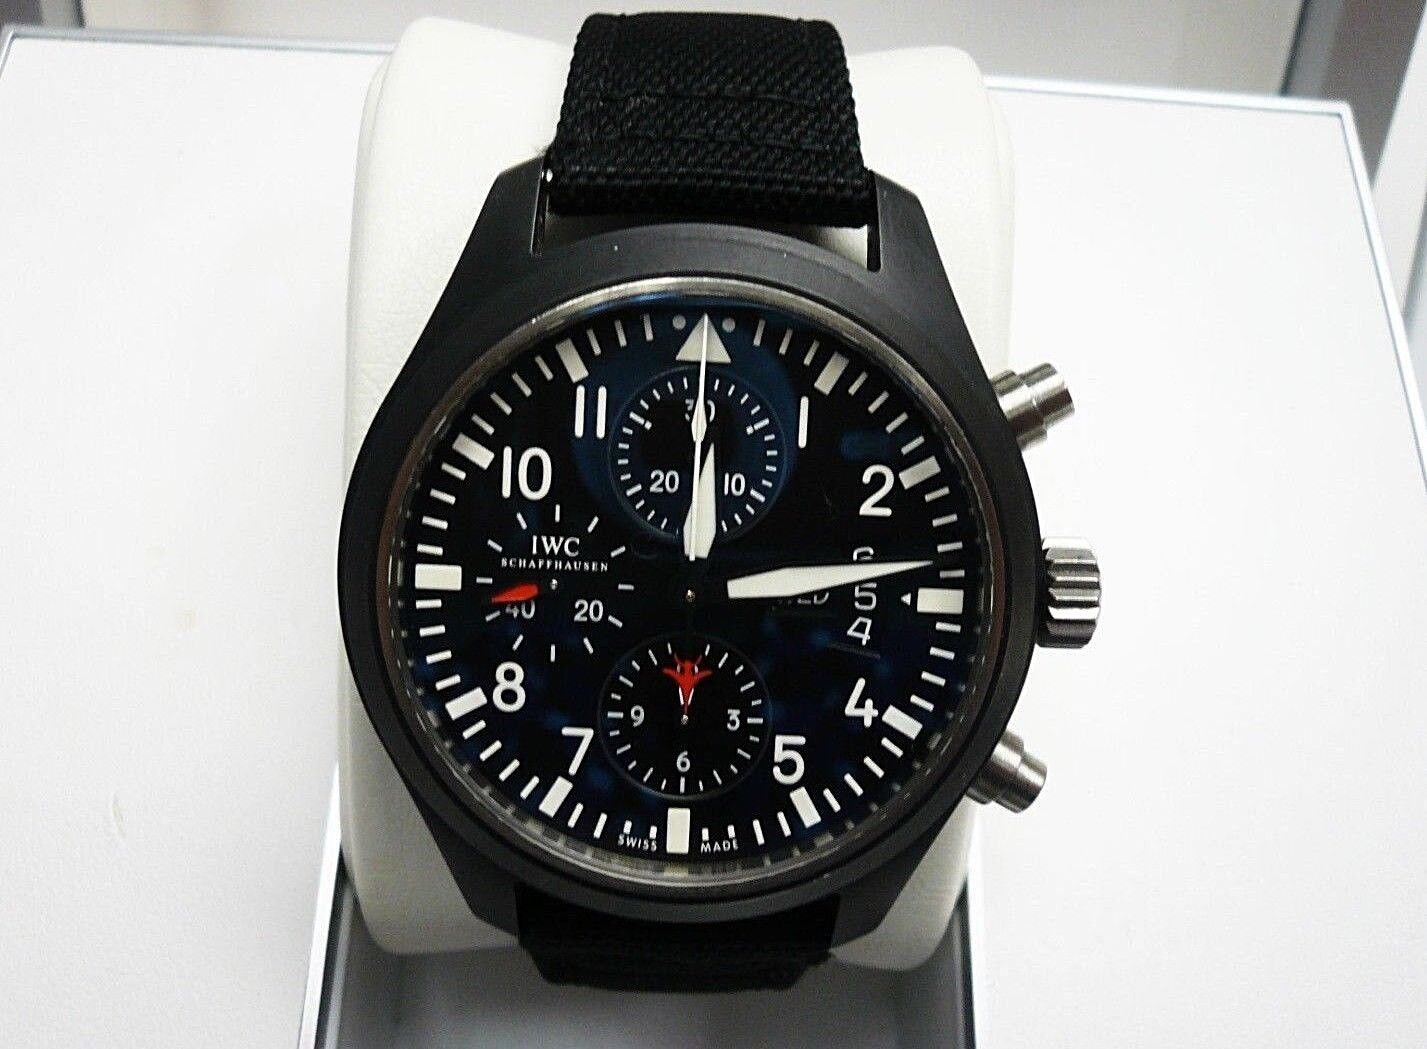 IWC Pilot Chronograph Top Gun Edition Black Ceramic Automatic Strap Watch - watch picture 1